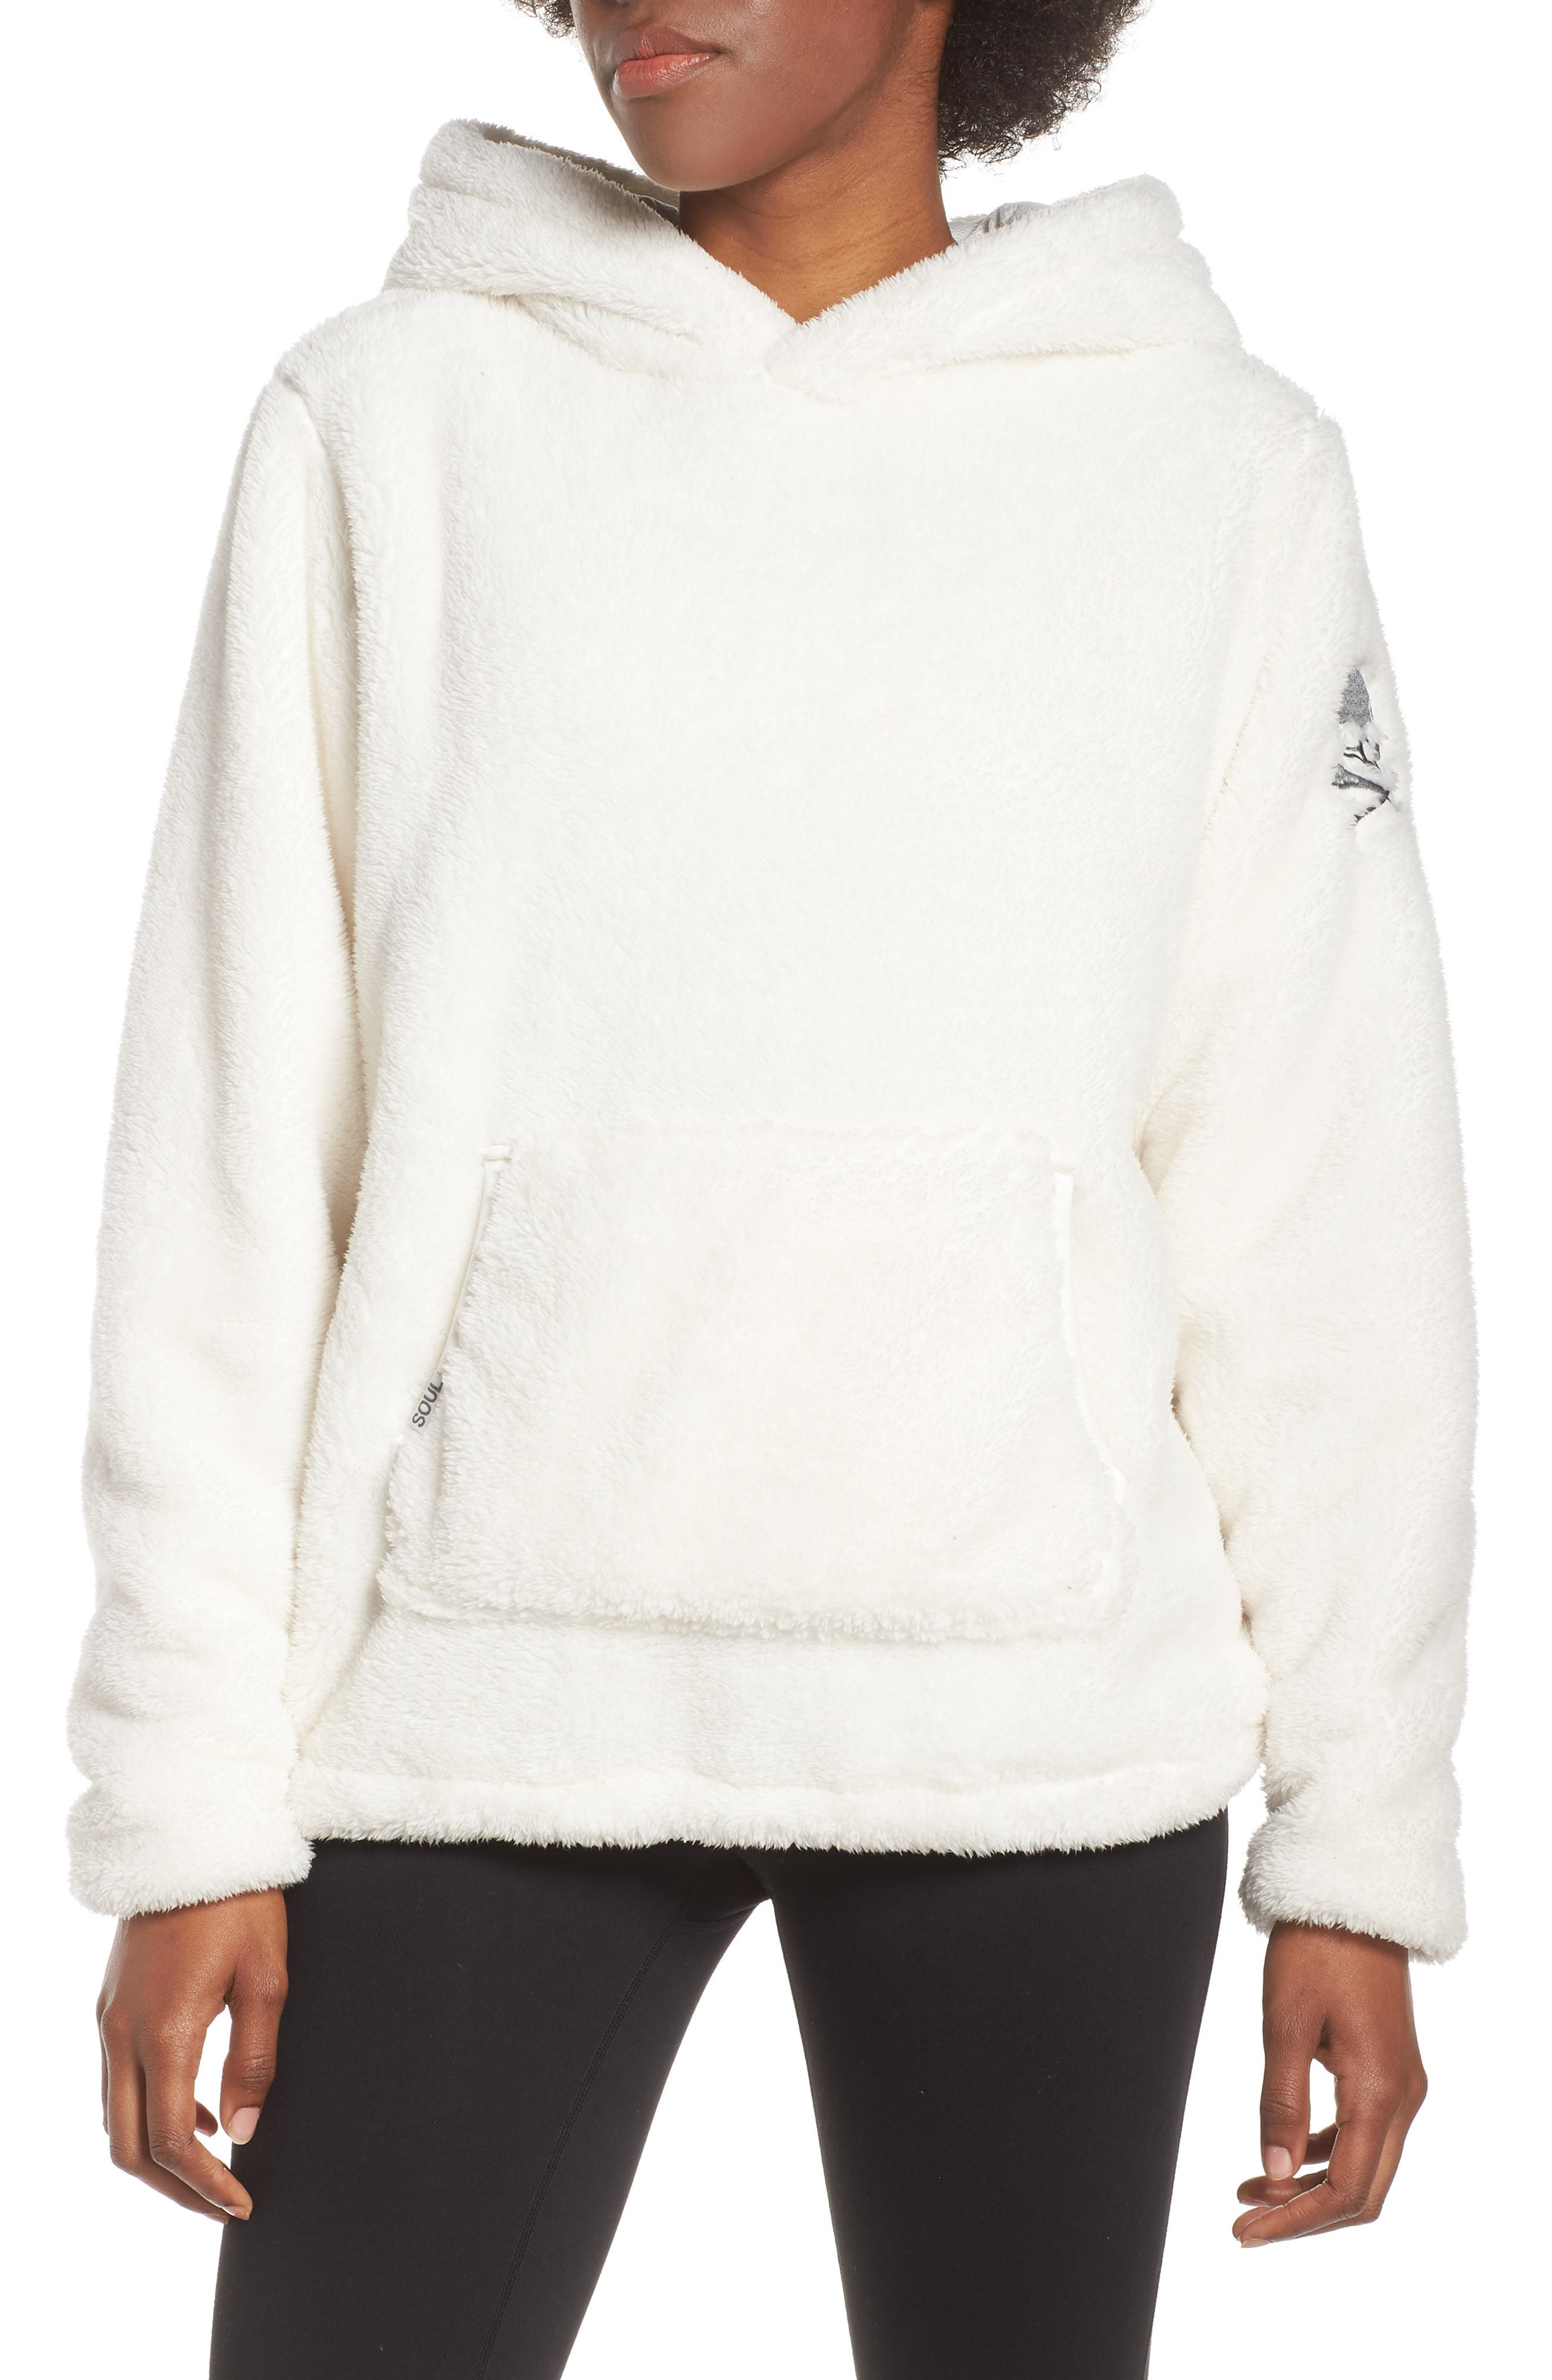 96fc22267743 Women's Soul By Soulcycle Clothing | Nordstrom